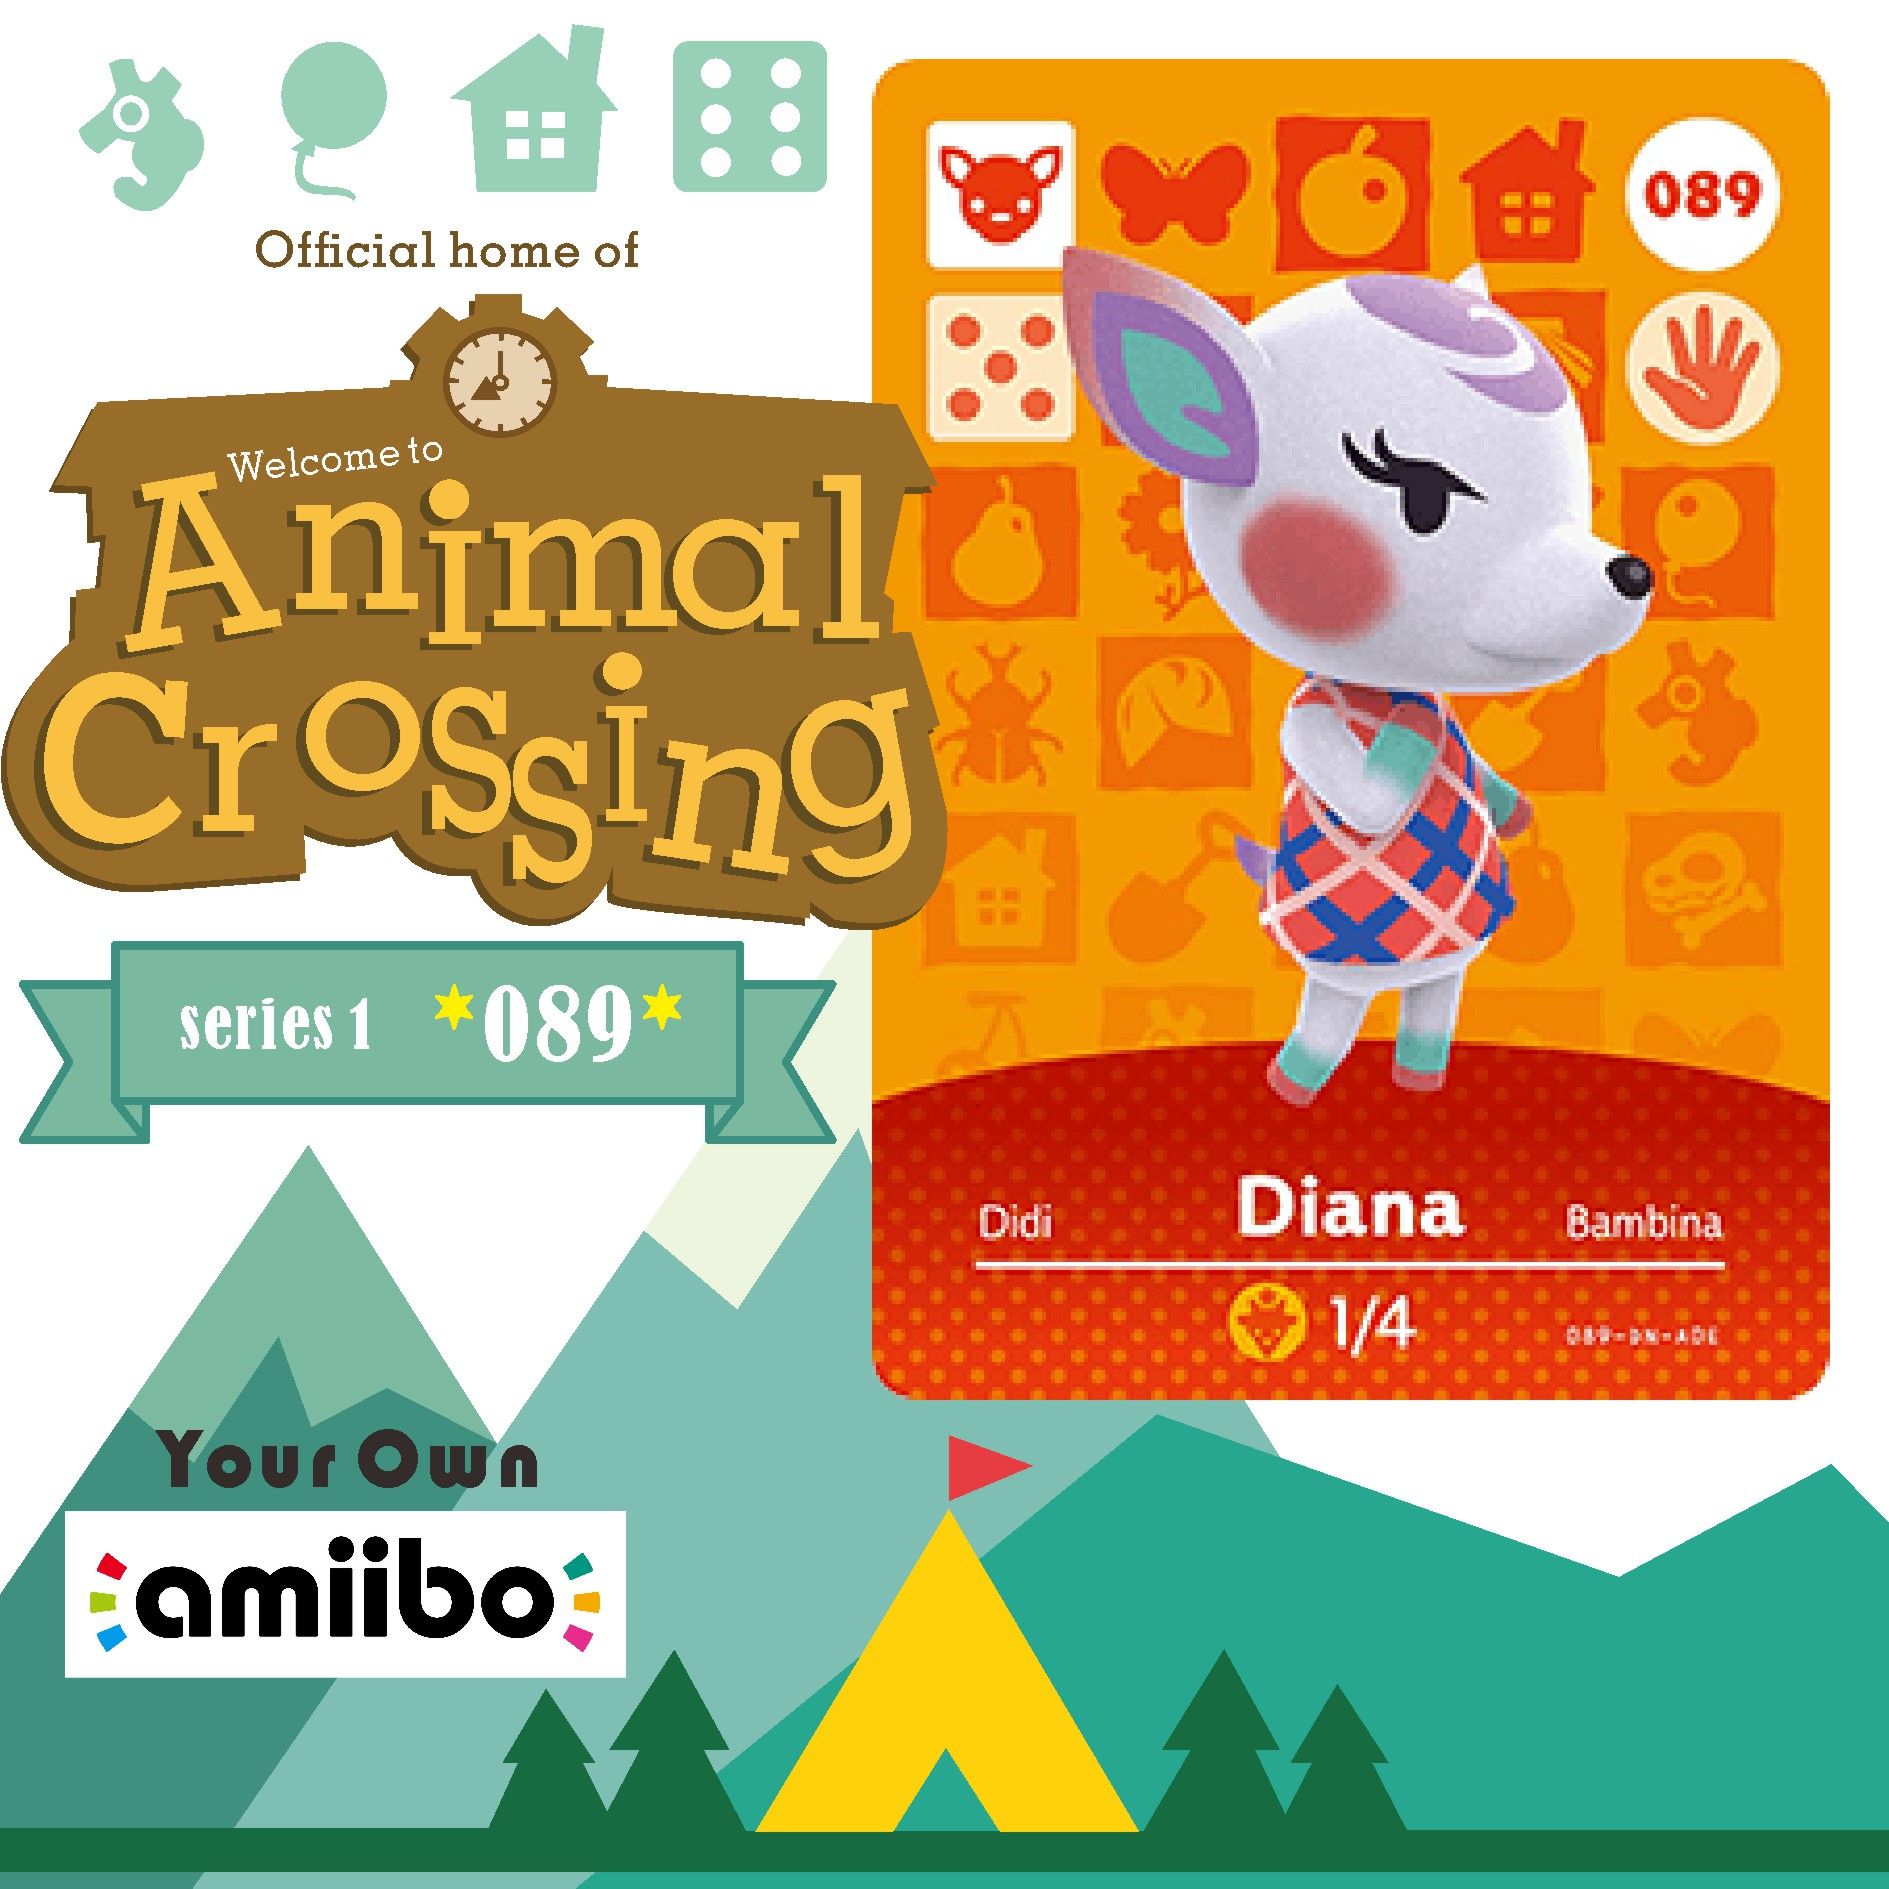 089 Amiibo Animal Crossing Diana Animal Crossing Amiibo Diana Villager Amiibo Card New Horizons NFC Card For Nintendo Switch